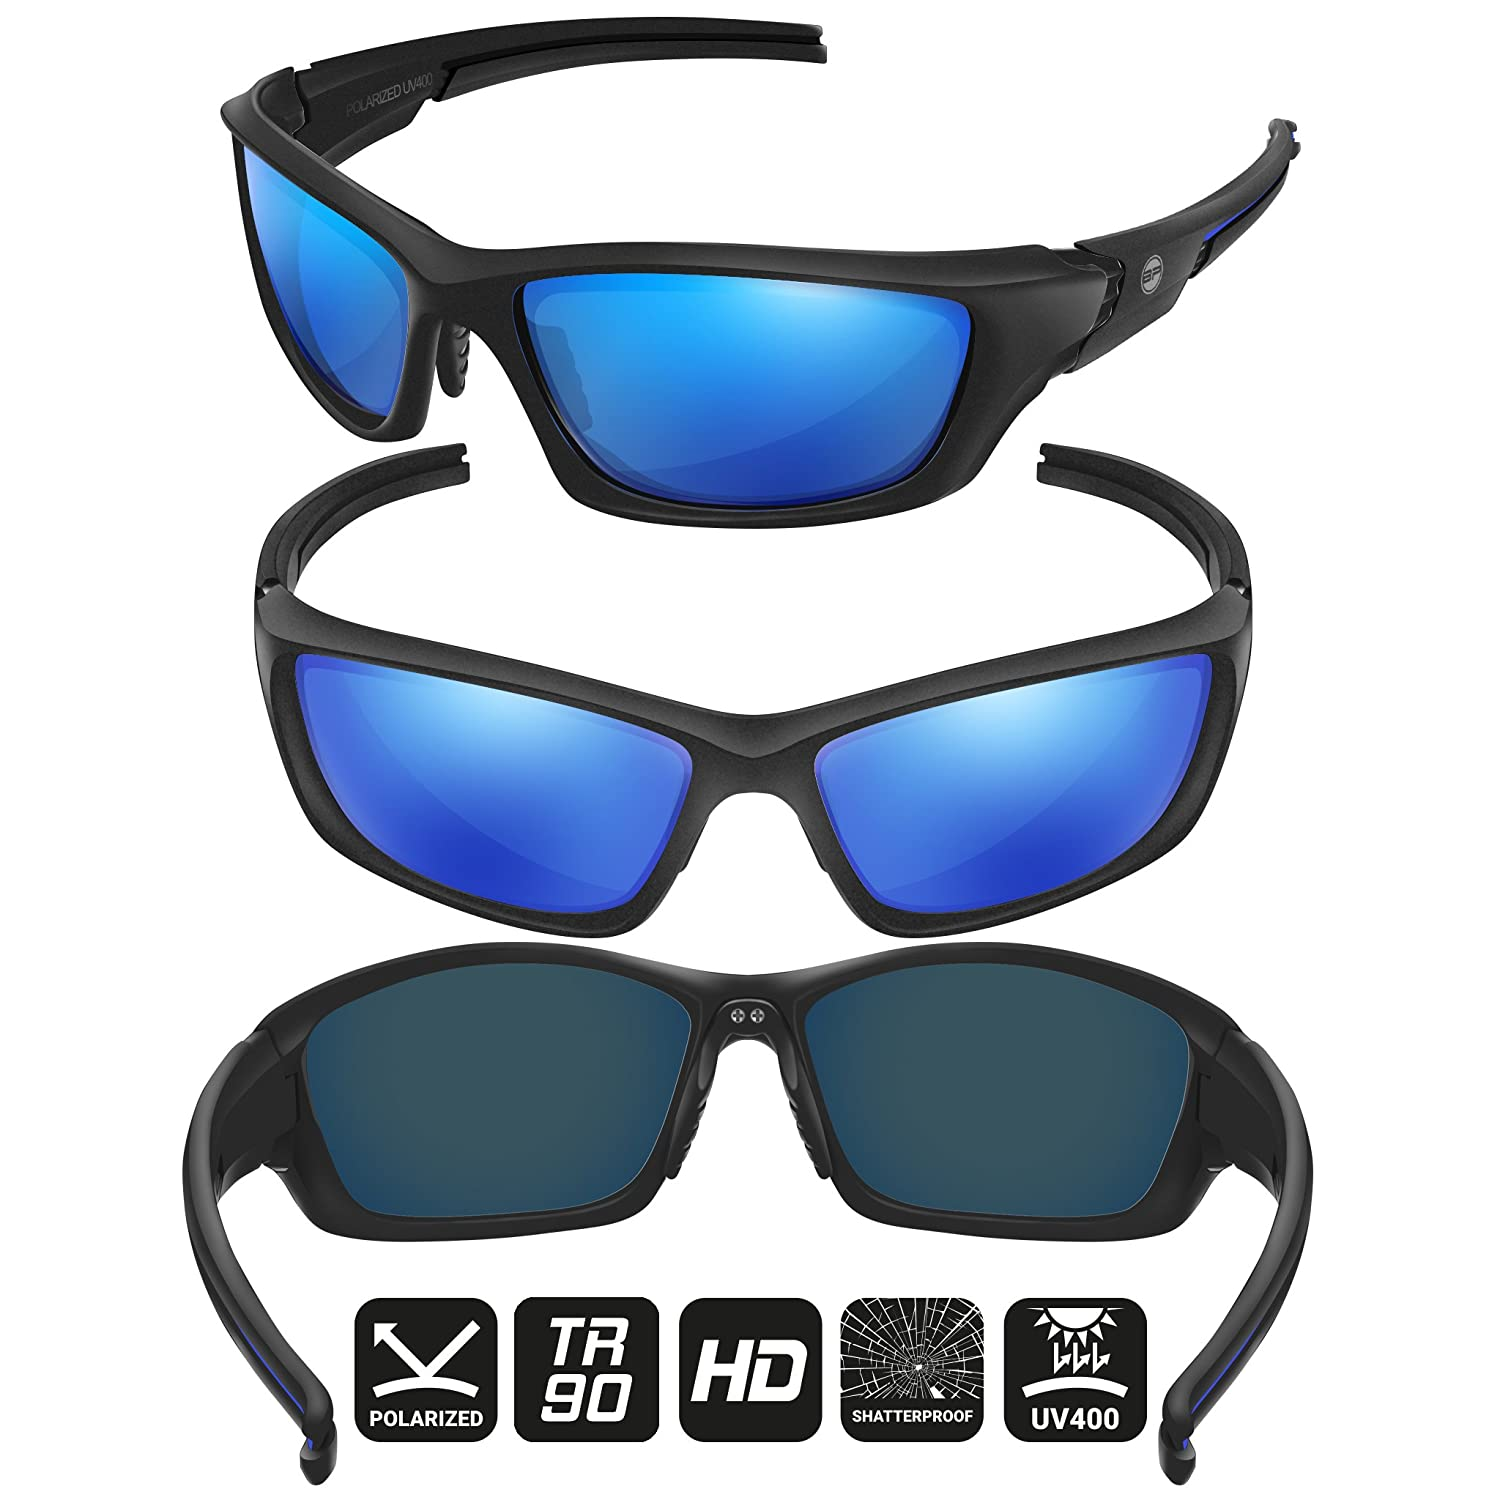 6d545ffe5c8 Amazon.com   BLUPOND Polarized Sports Sunglasses for Men - TR90 Unbreakable  Frames for Baseball Cycling Driving - Ranger   Sports   Outdoors